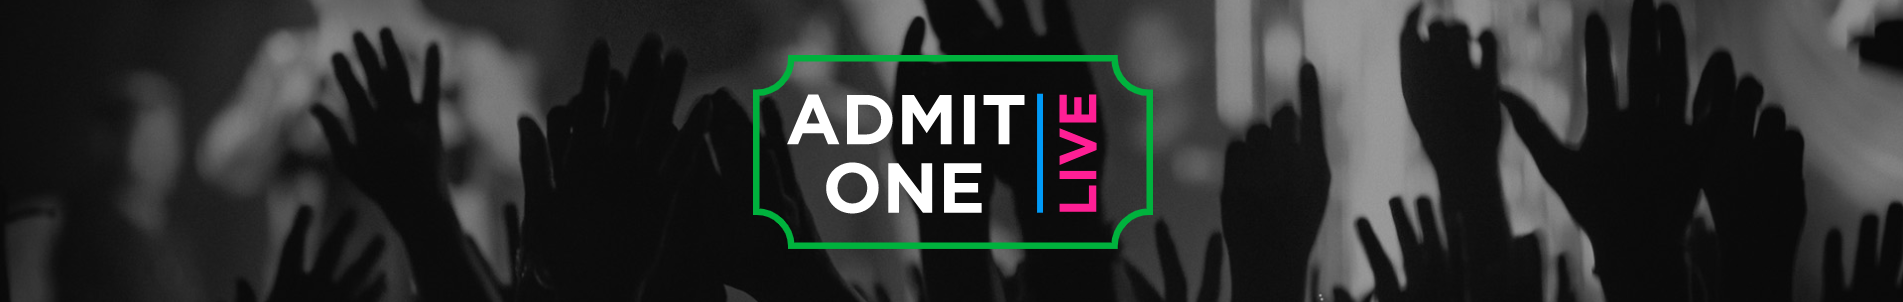 Tickets for MRG Live Presents: Greer in Vancouver from Admit One Live